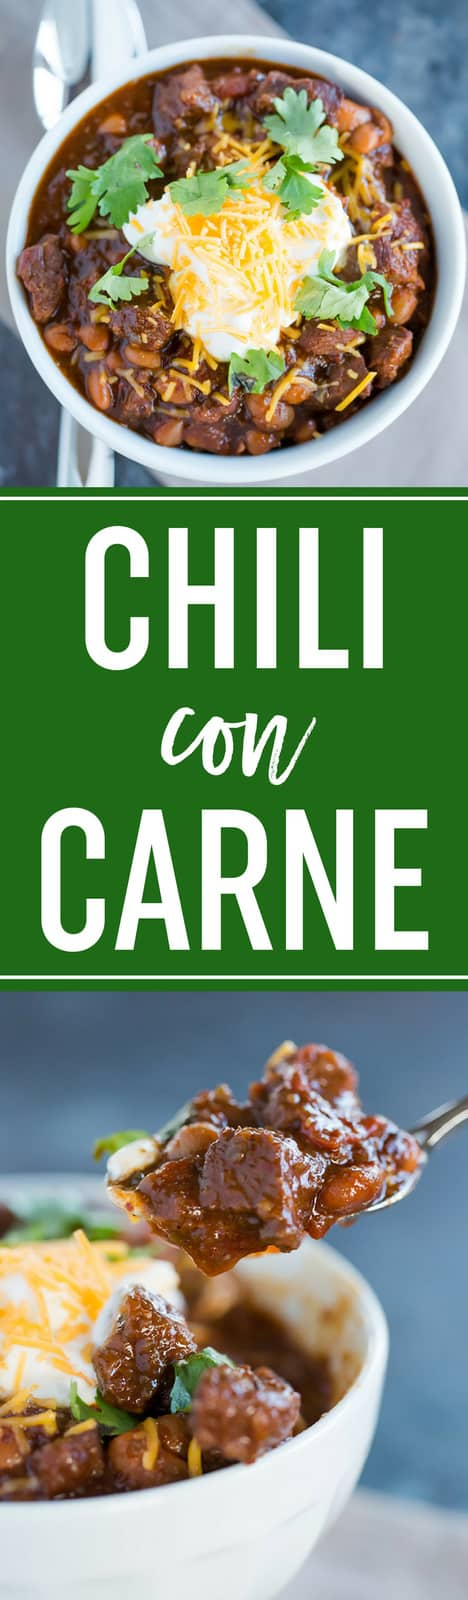 Chili Con Carne :: This version of chili con carne is made with chunks of beef and a homemade chili paste. A great change of pace from chili made with ground beef! #chili #dinner #recipe #beef #superbowl